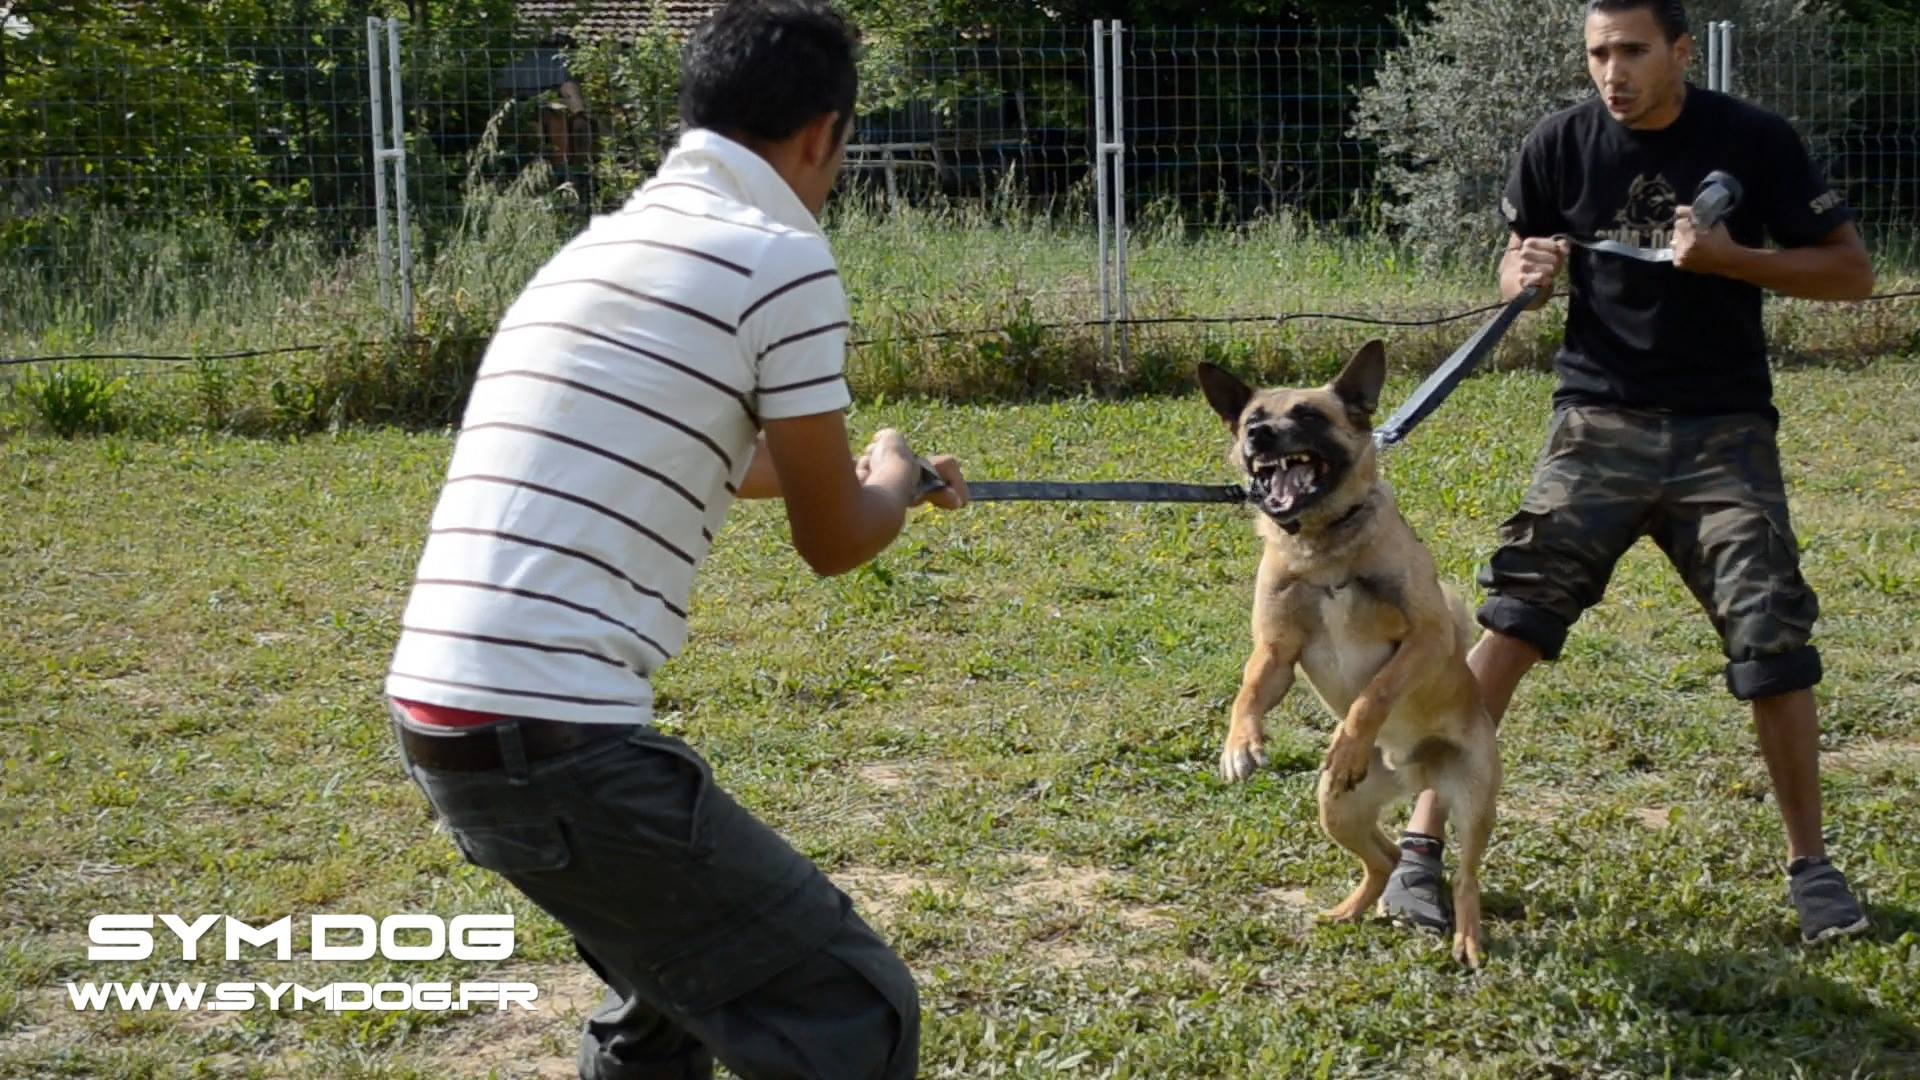 devenir educateur canin, avis symdog